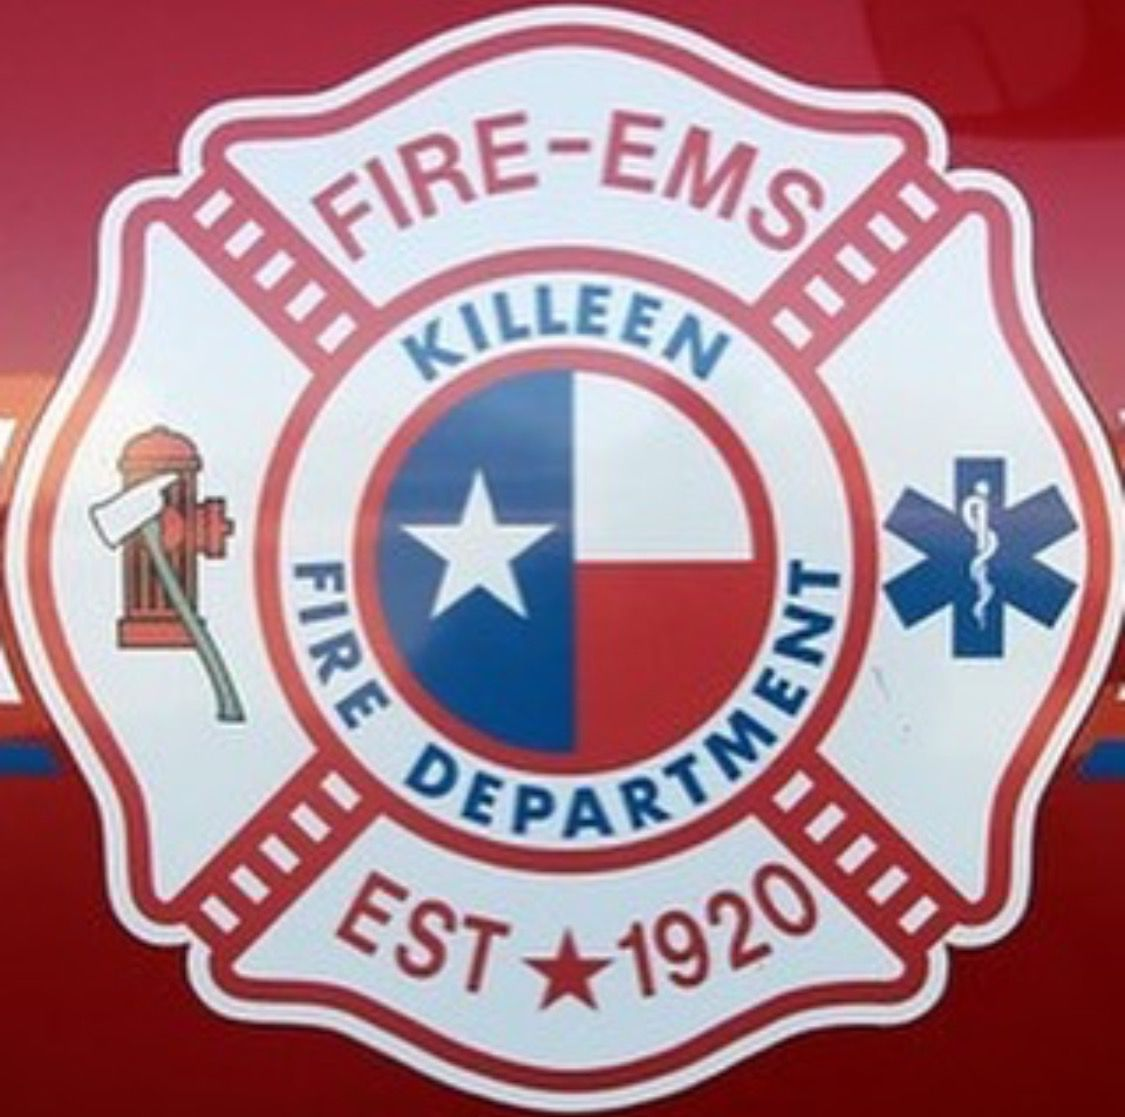 Killeen Professional Fire Fighters' Association